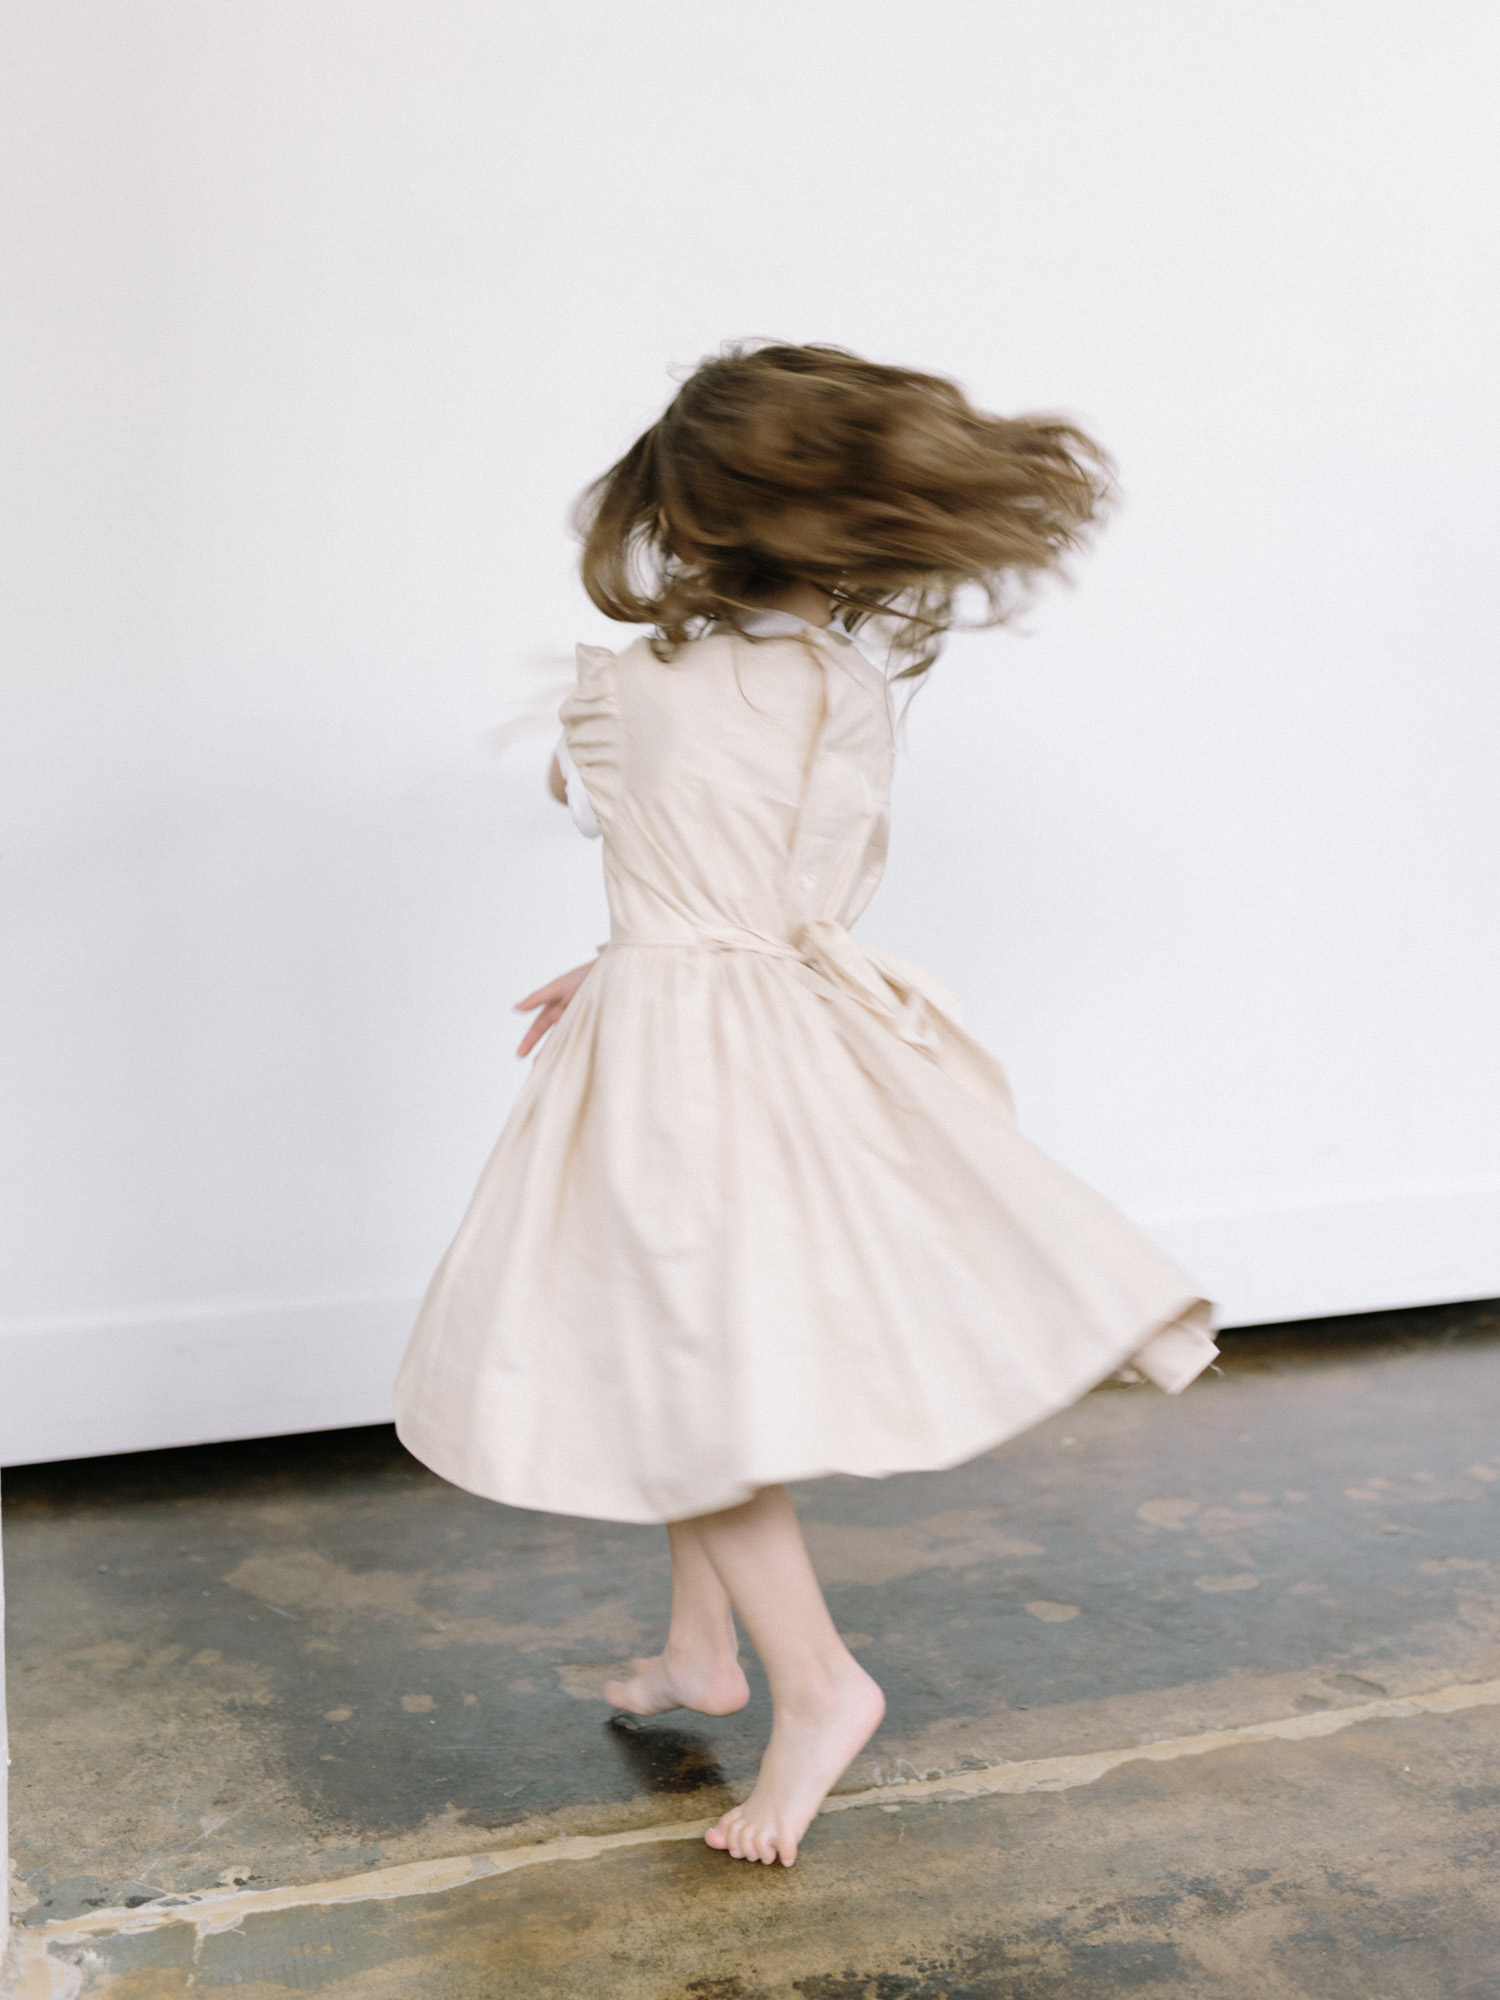 motion blur is captured as a young flower girl twirls with bare feet